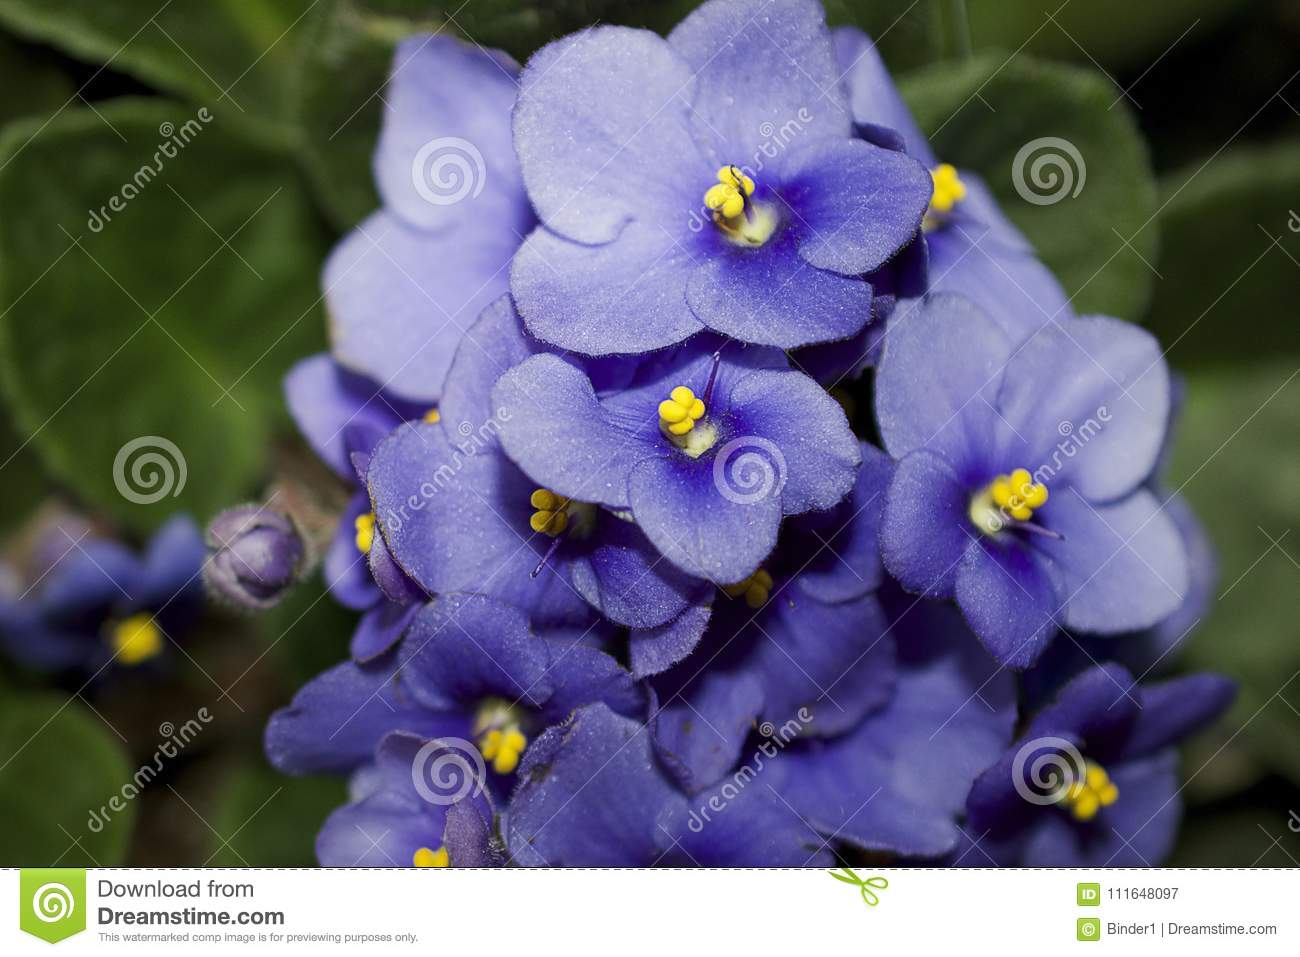 Very pretty colorful spring flowers close up stock image image of download very pretty colorful spring flowers close up stock image image of nice beautiful mightylinksfo